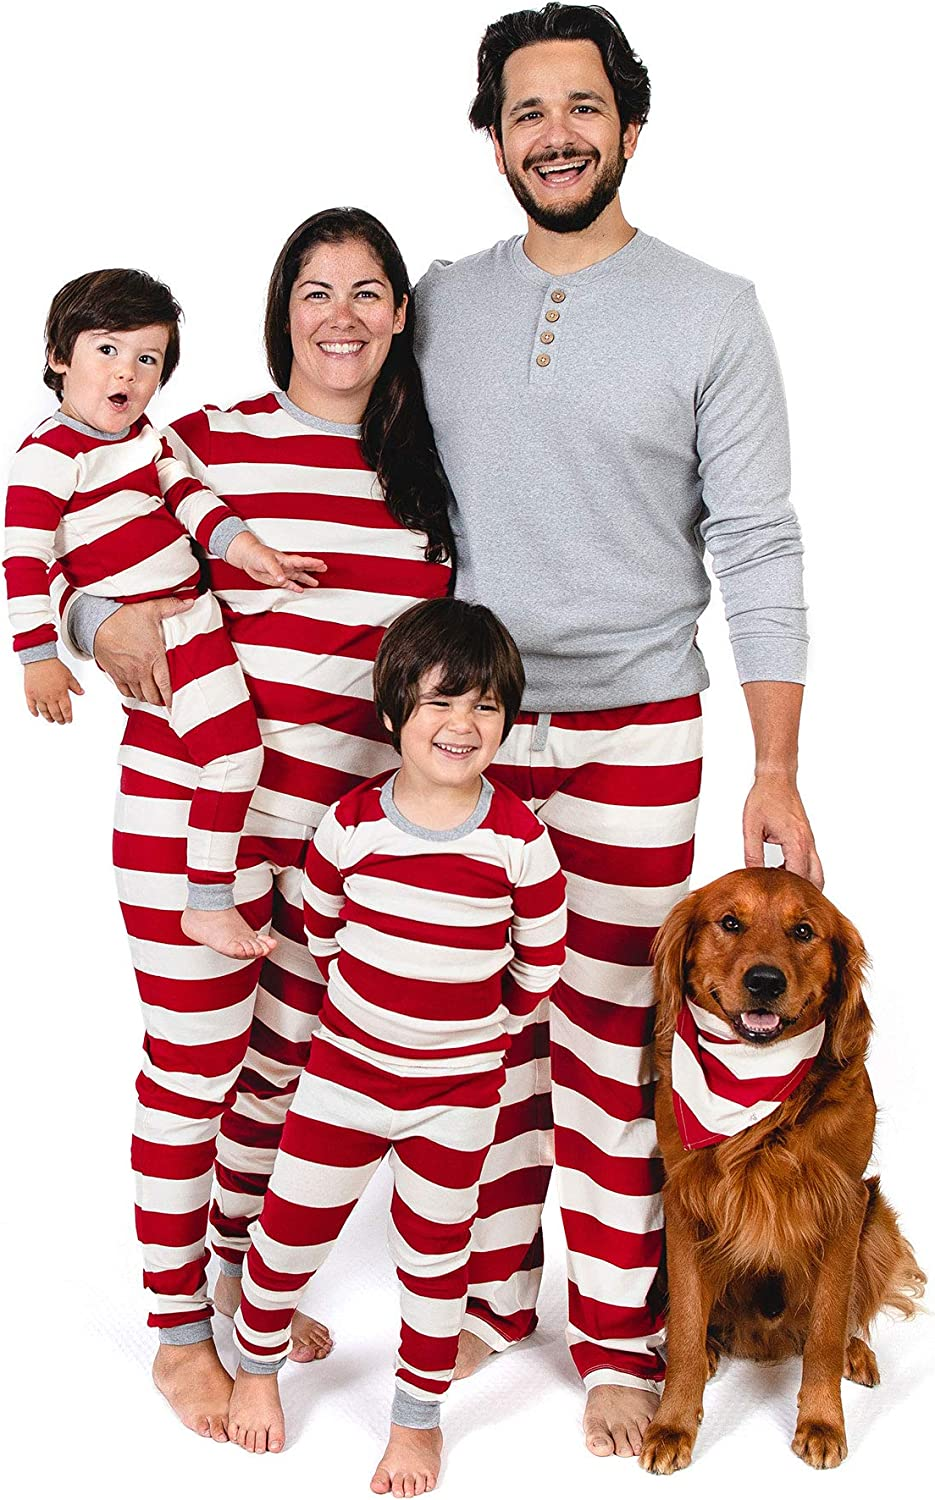 Burt's Bees Baby Family Jammies, Holiday Matching Pajamas, 100% Organic Cotton PJs, Red Rugby Stripes, Womens Medium